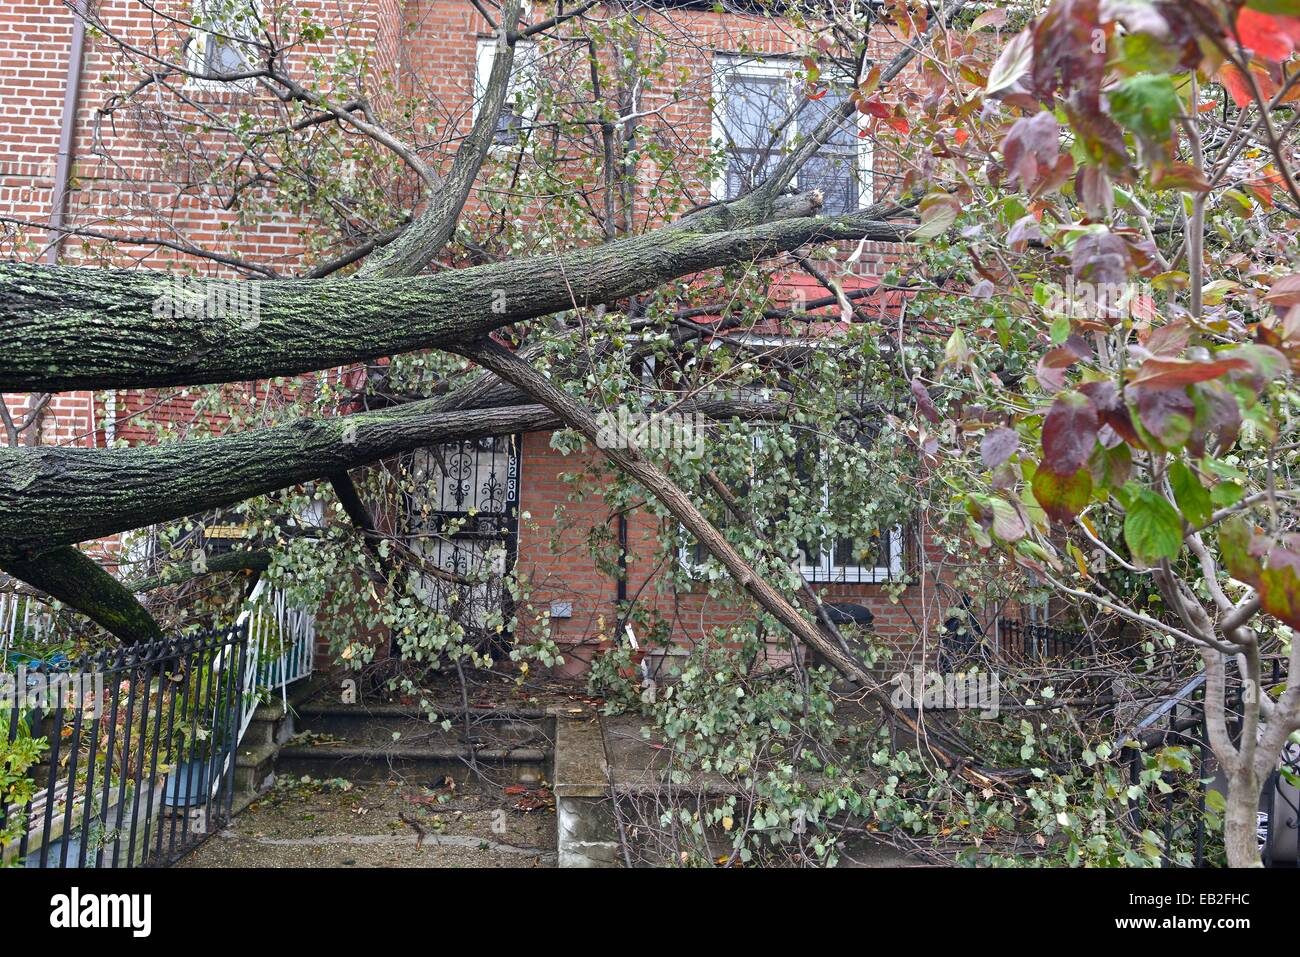 Aftermath of the tropical super storm Hurricane Sandy, in Queens, New York. - Stock Image